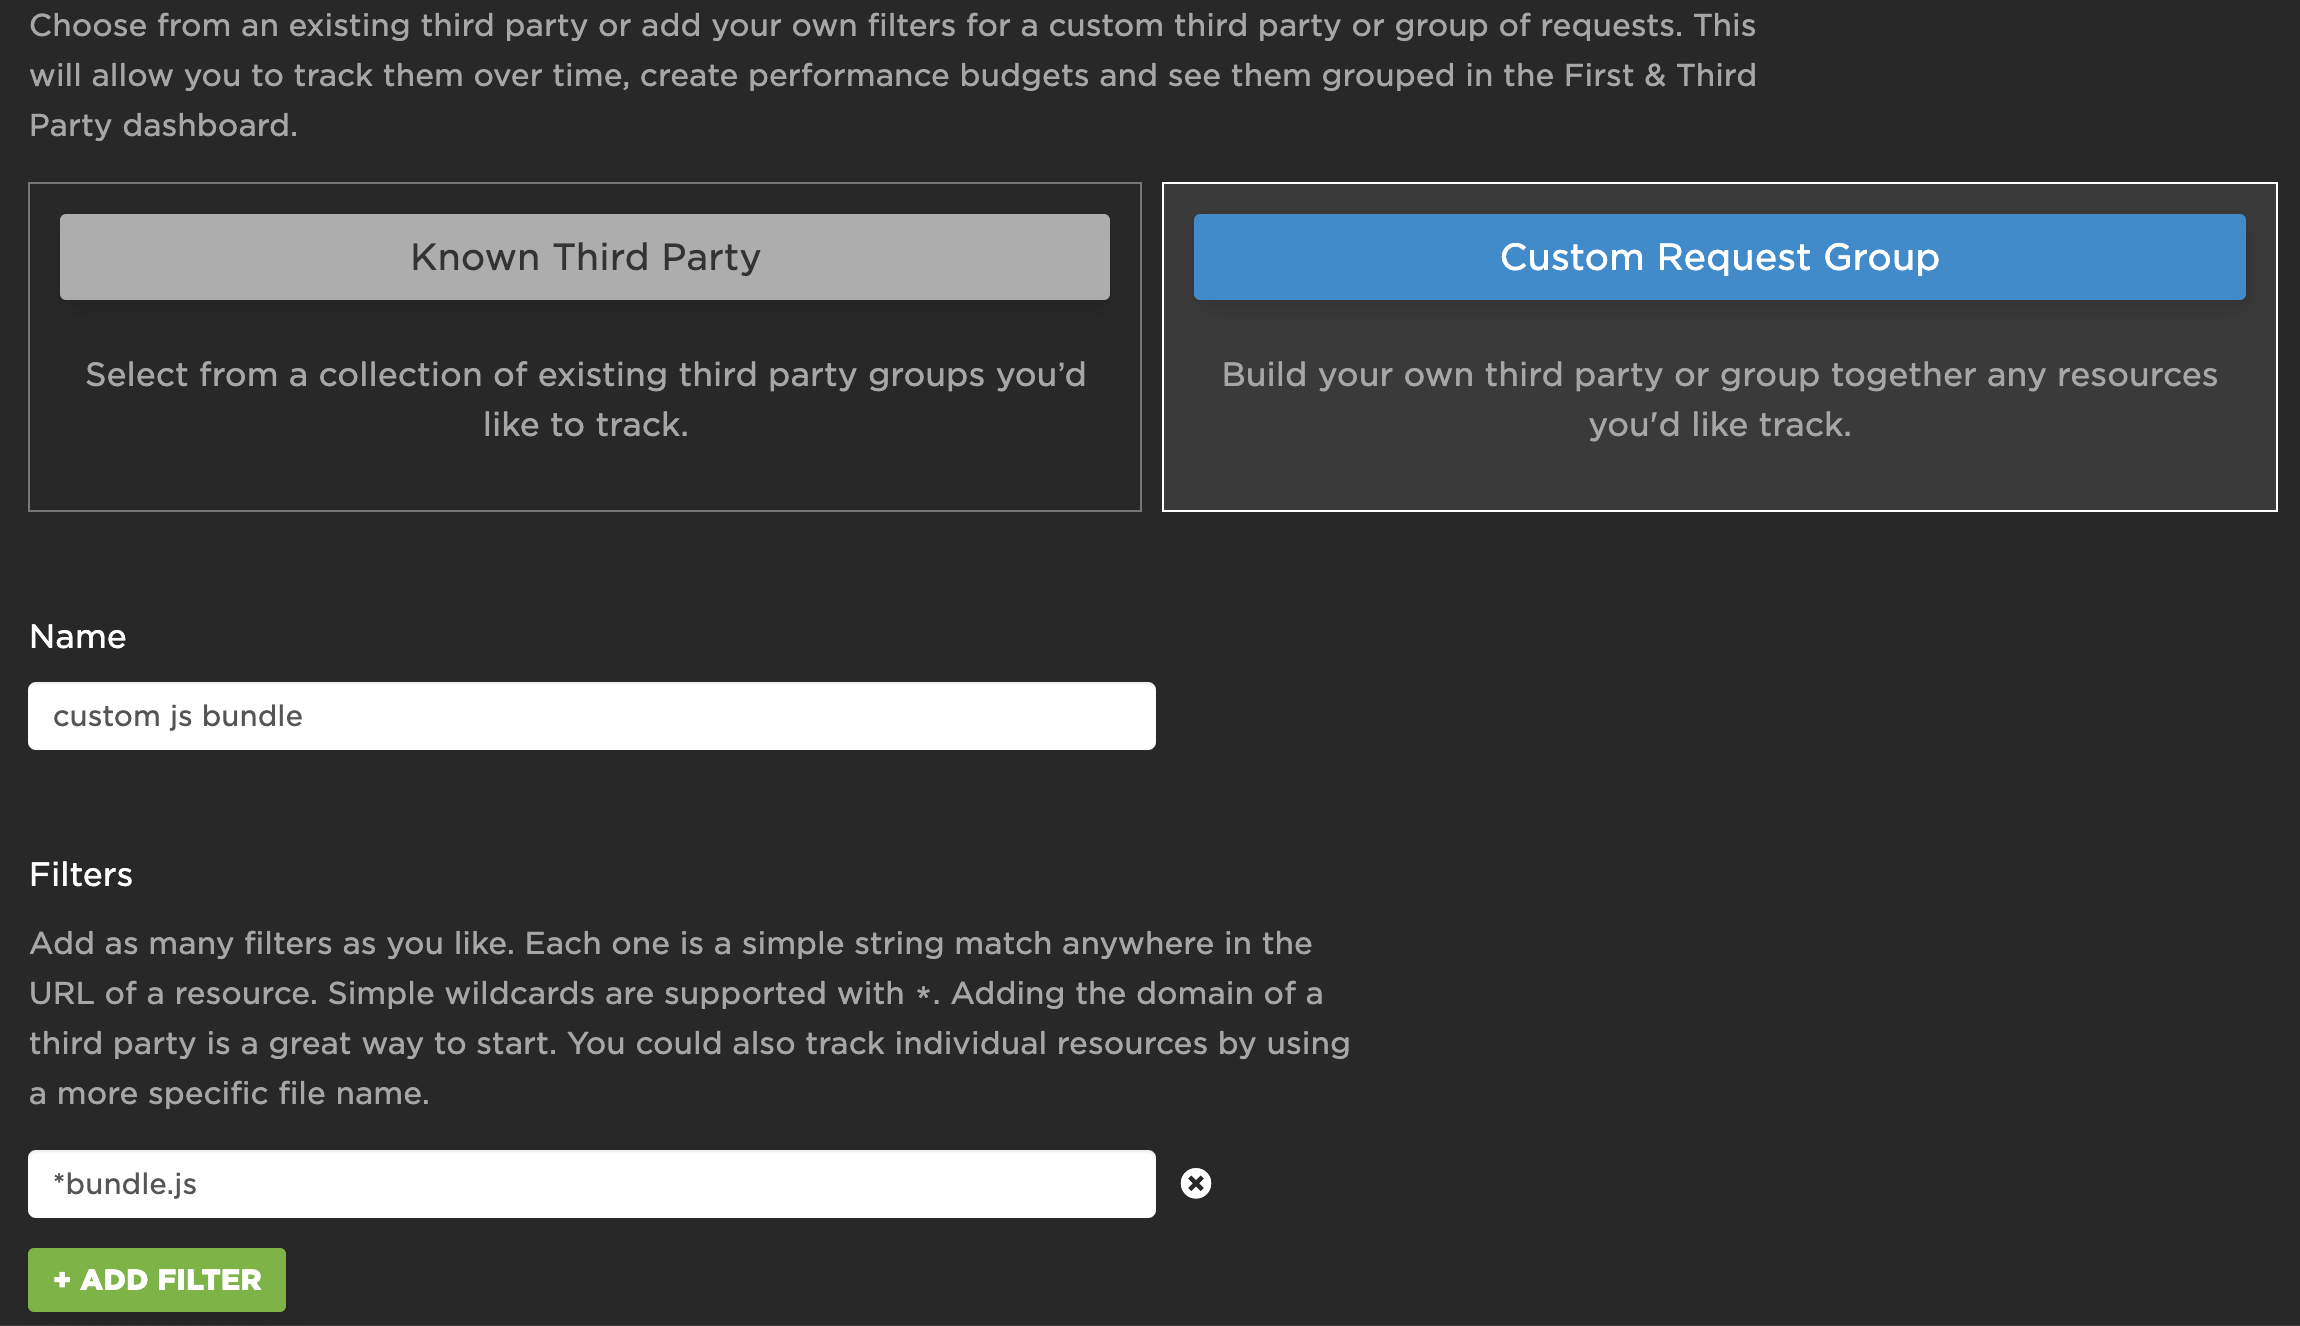 Creating a Custom Request Group